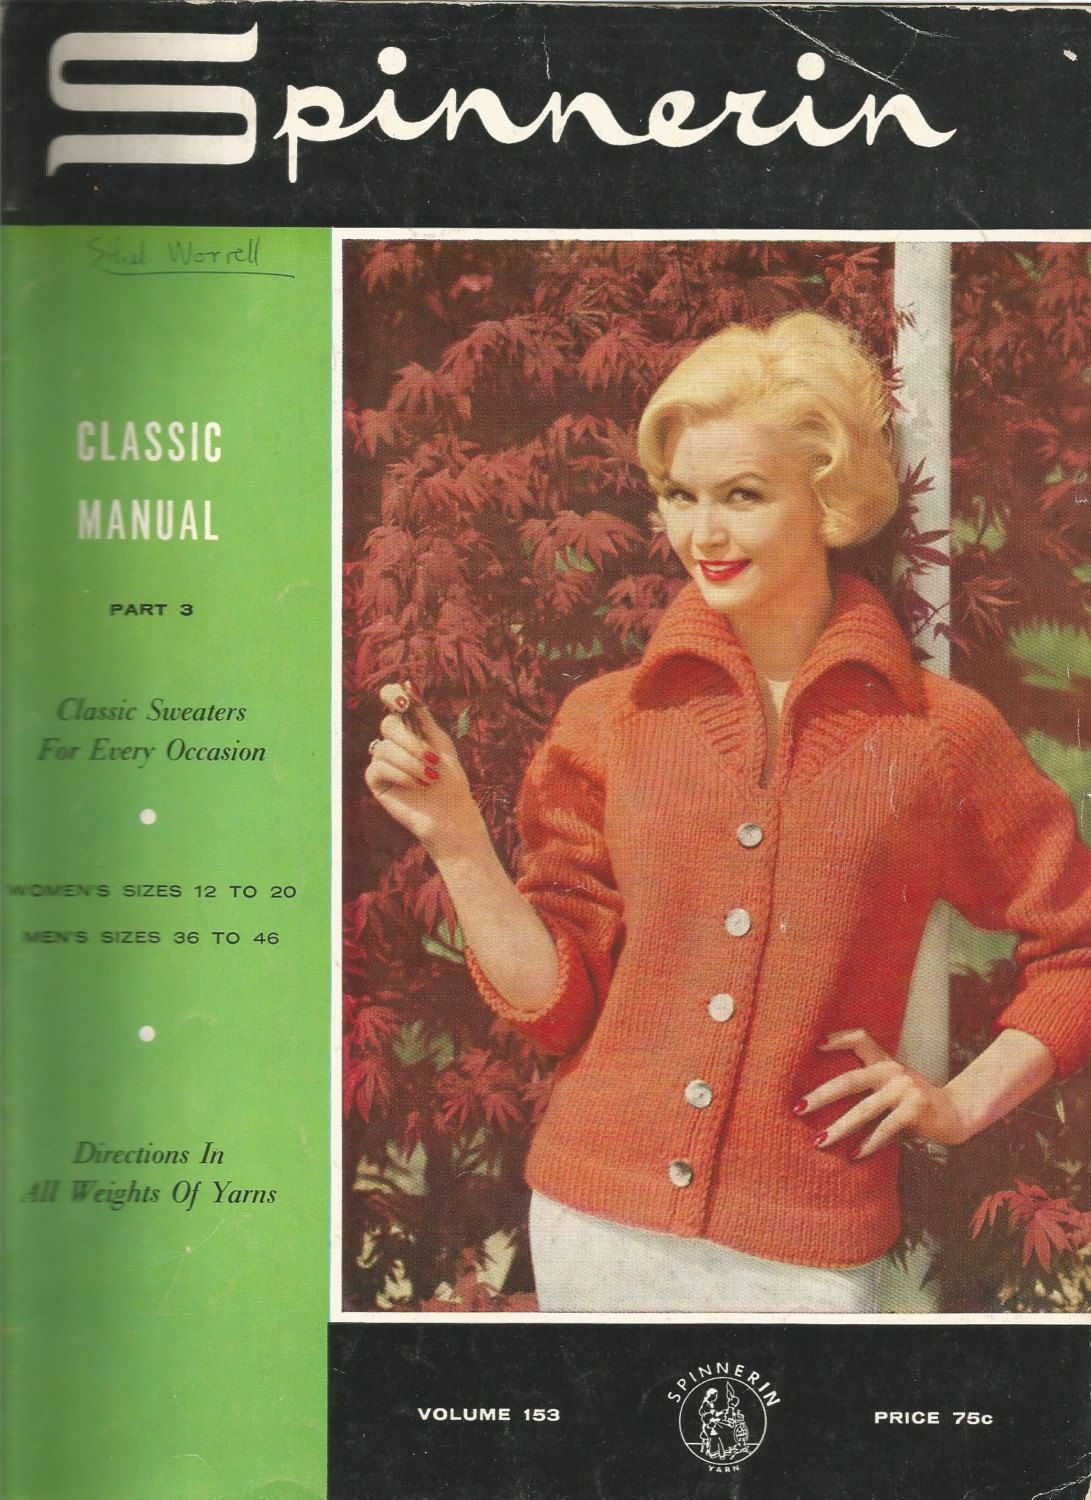 Vintage Spinnerin Classic Sweaters For Every Occasion Woman's & Men's…